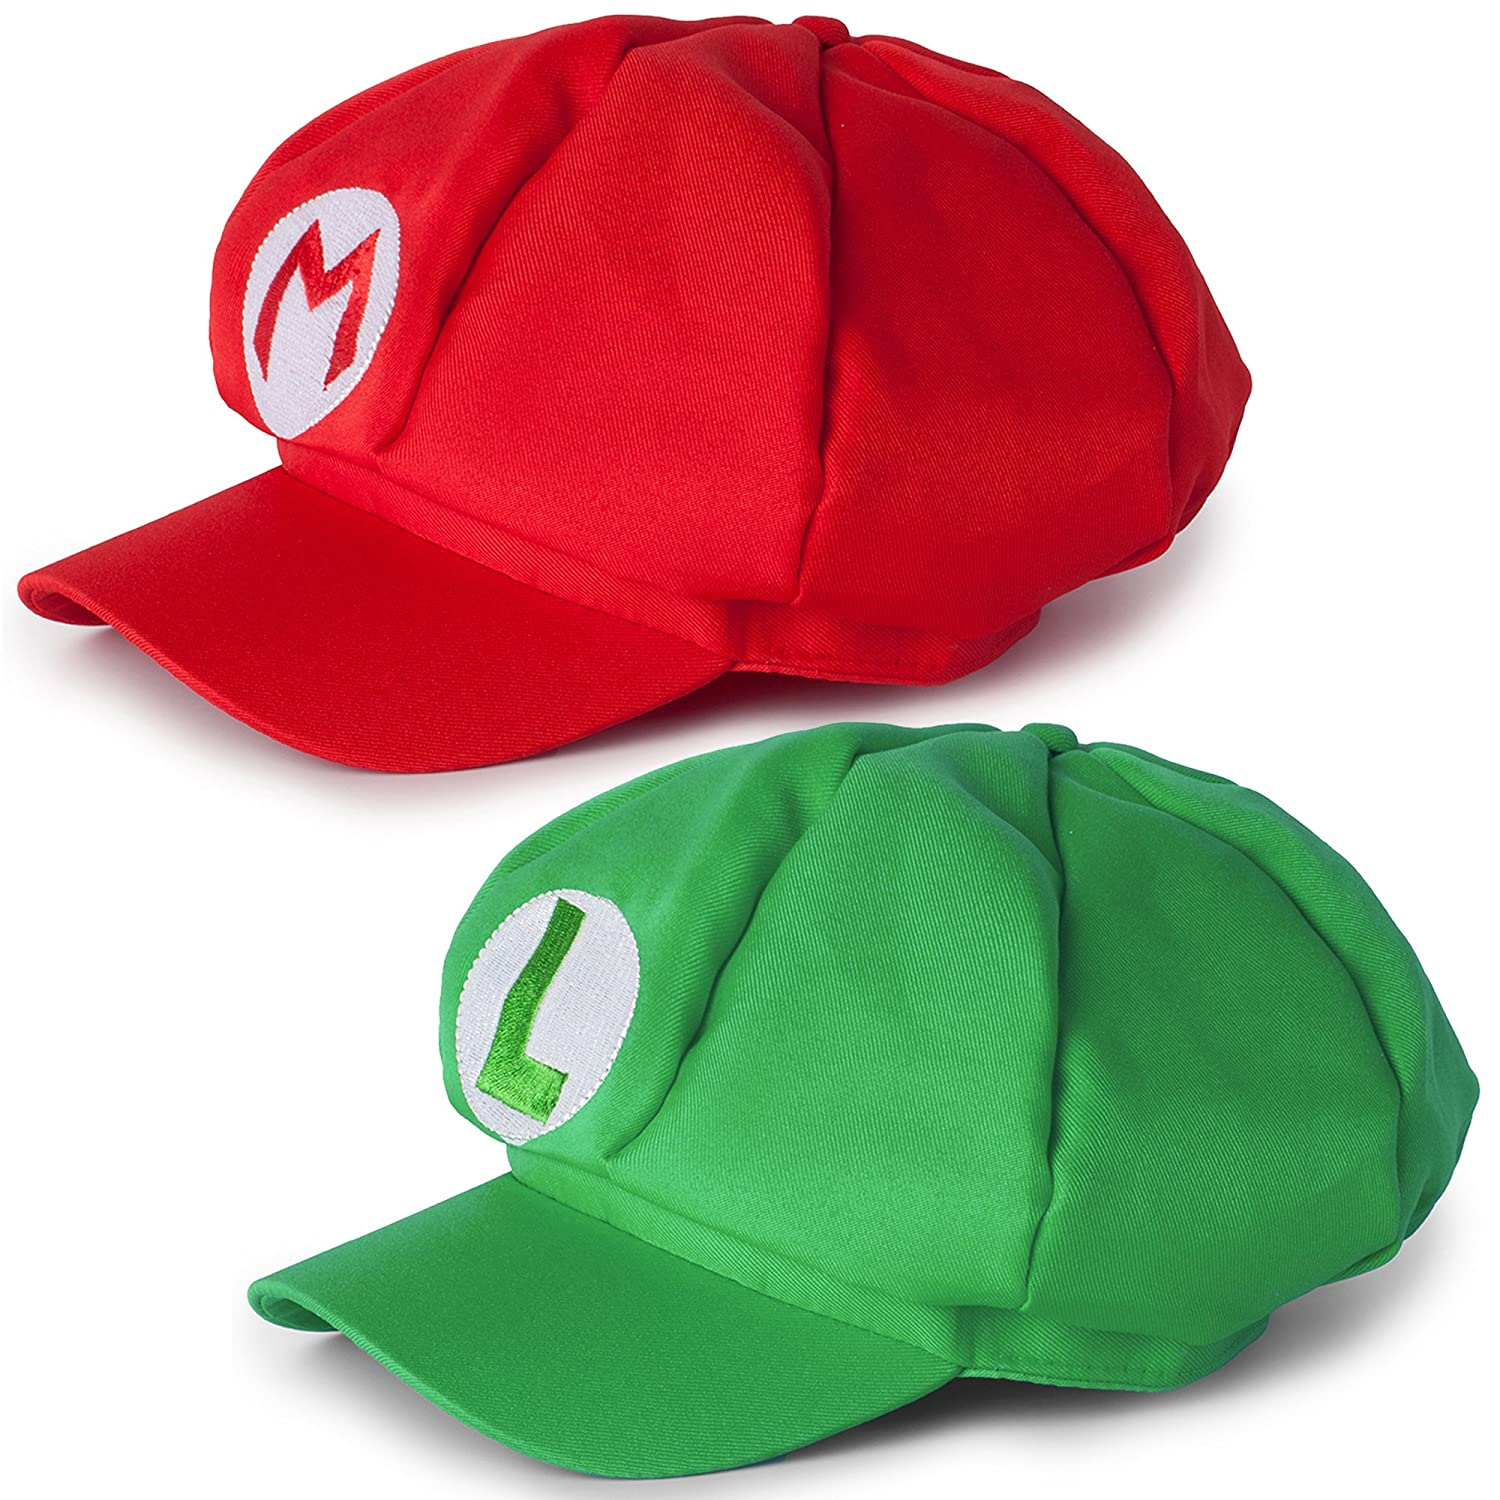 caa87936621 Katara 1659 Super Mario and Luigi Hats